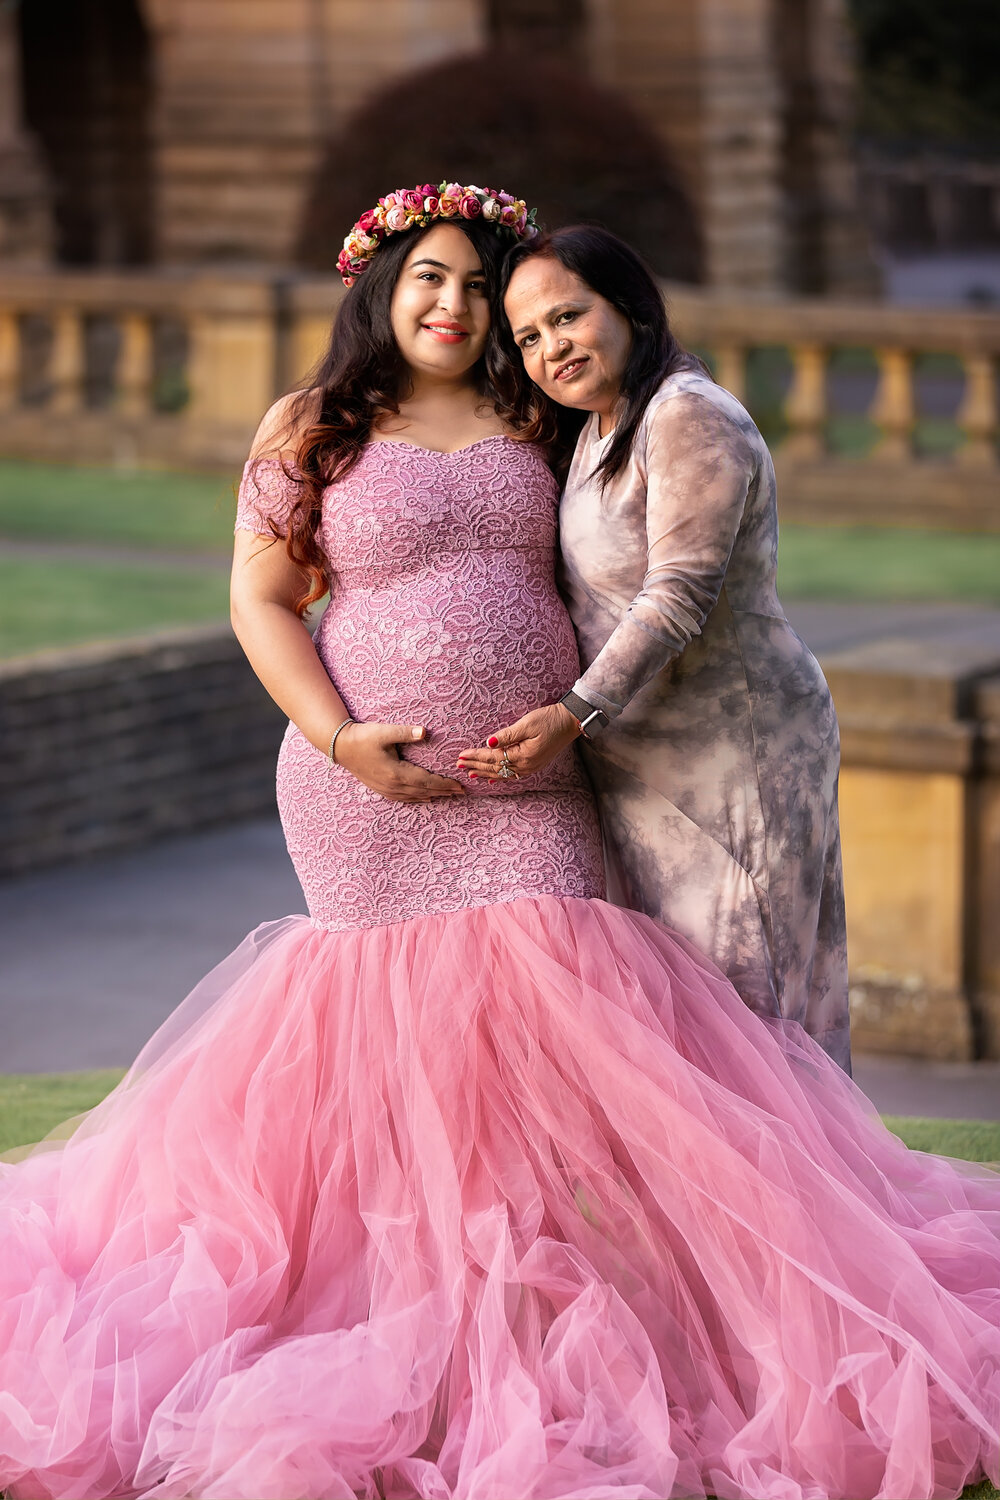 Professional maternity photography Leeds, Bradford, York, Harrogate, Wakefield: beautiful expecting woman in a stunning log gown posing for a pregnancy picture with her mum in Bradford, West Yorkshire